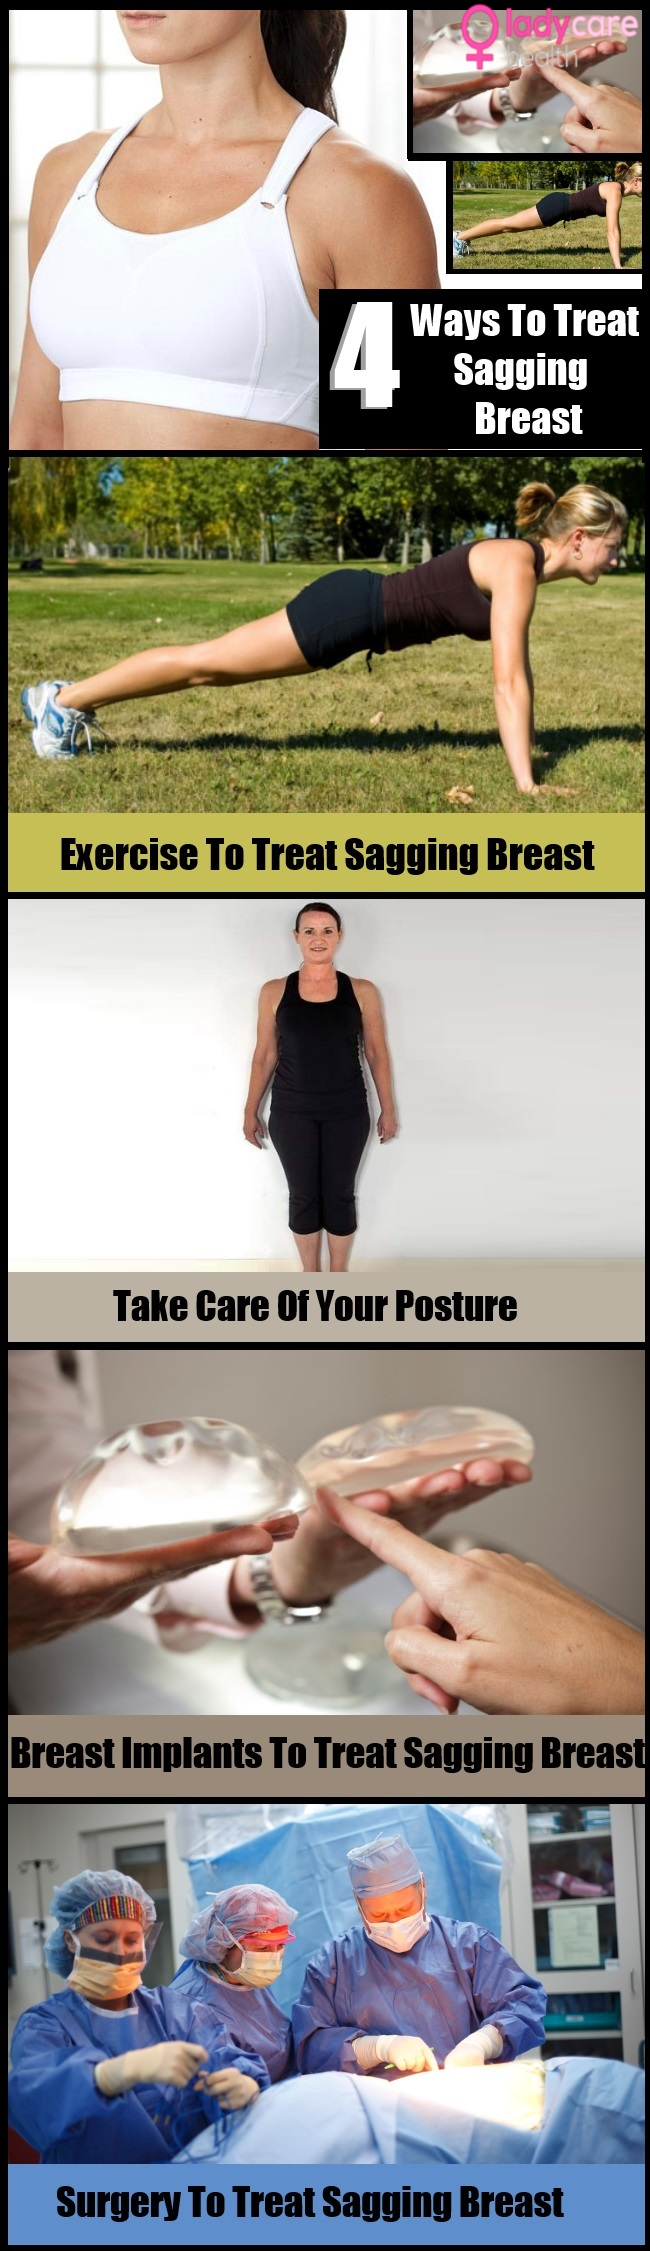 4 Ways To Treat Sagging Breast